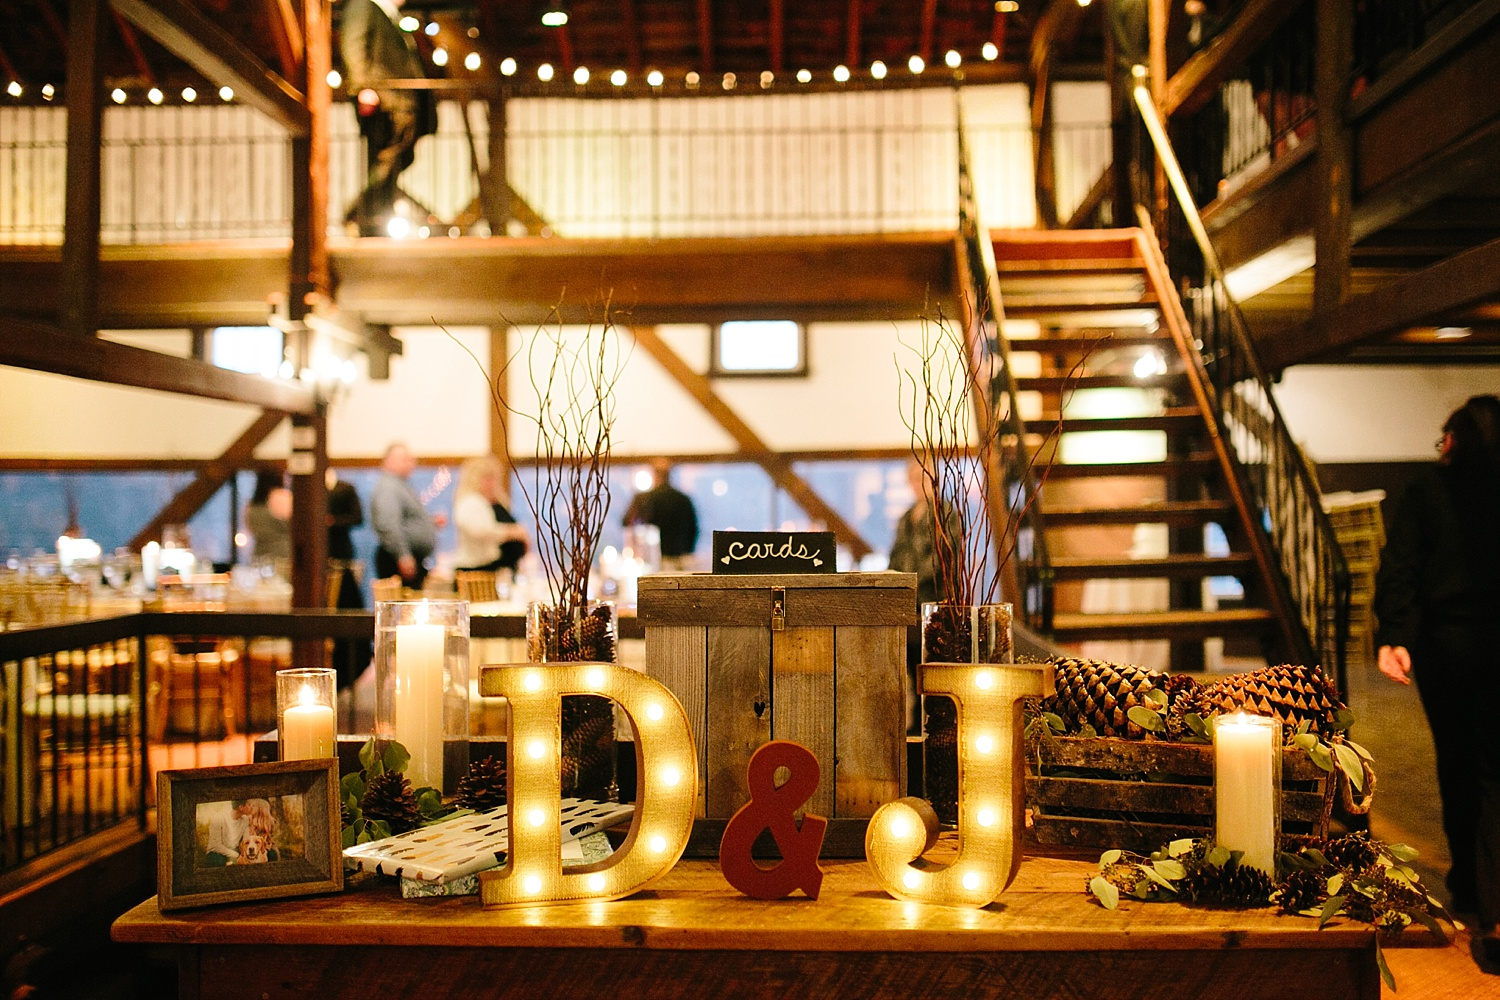 jessdavid_barnonbridge_phoenixville_winter_wedding_image_092.jpg